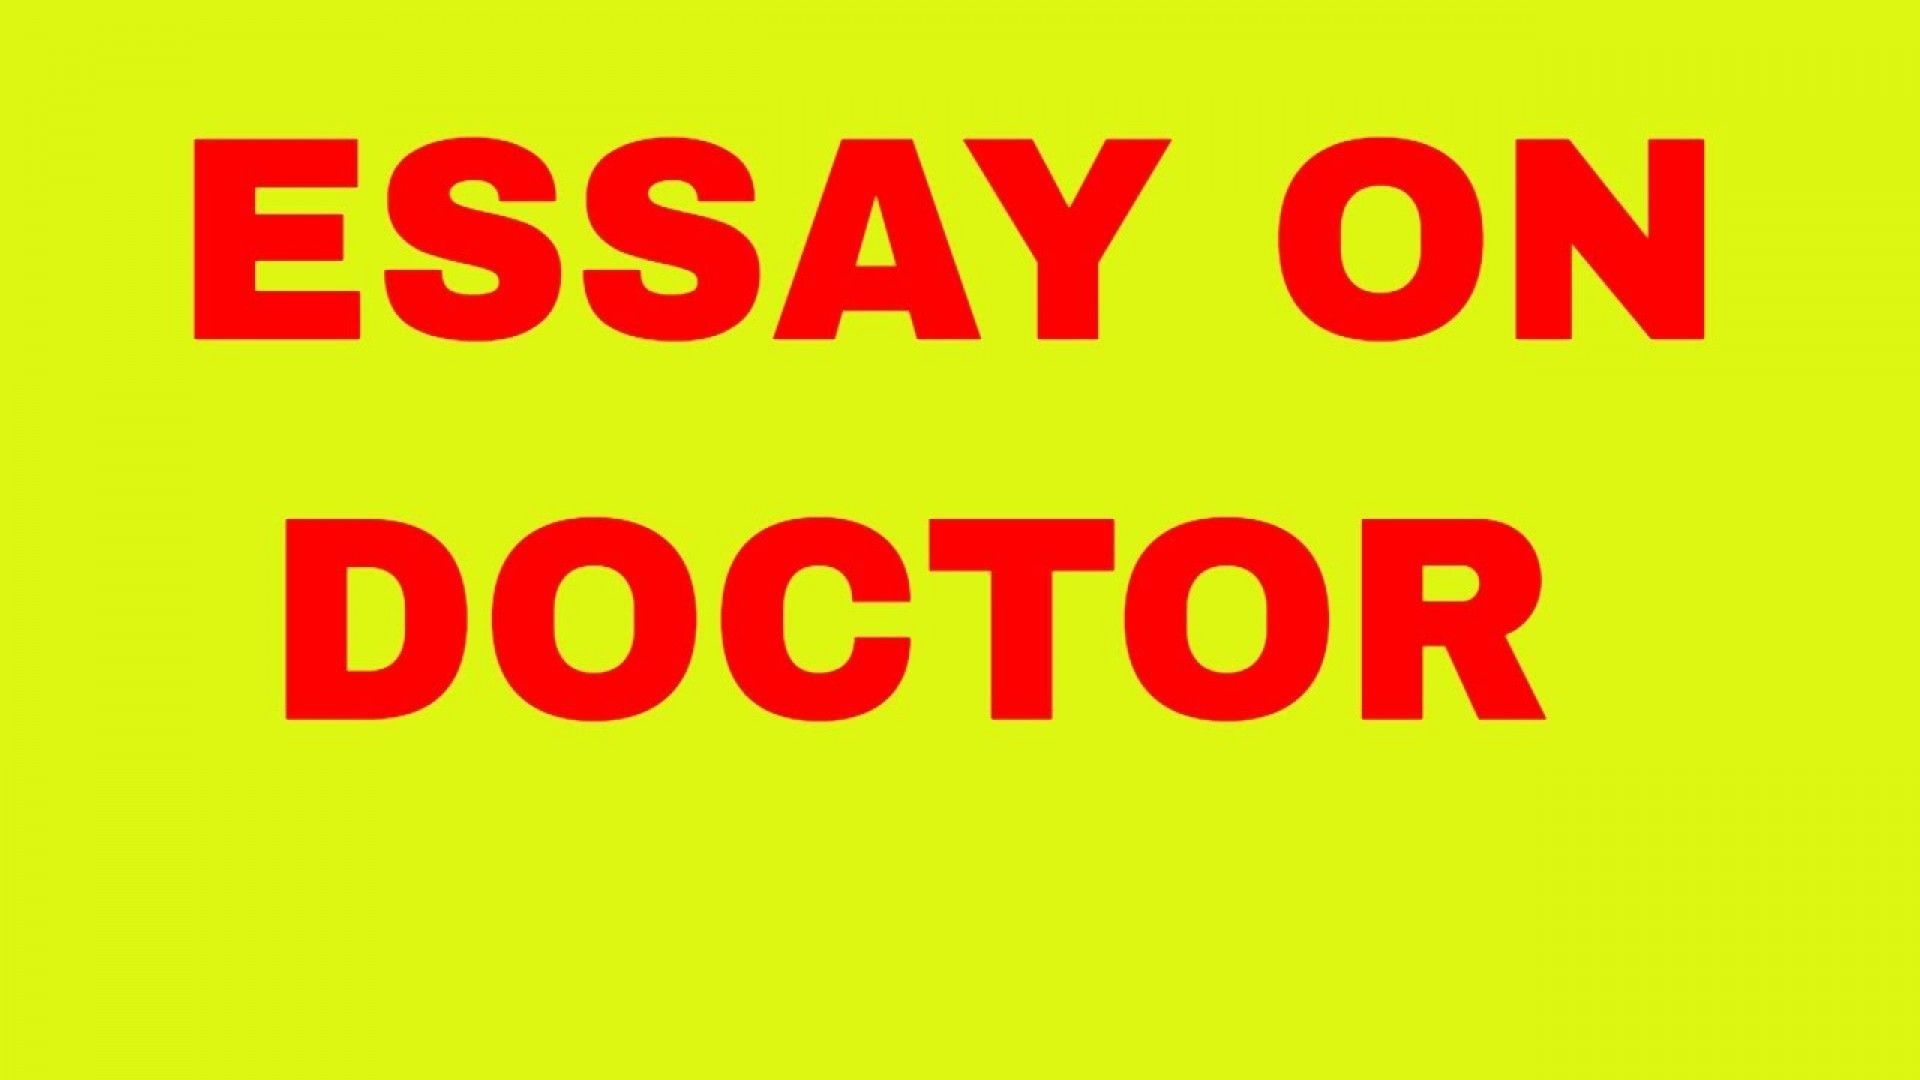 003 Maxresdefault Essay About Doctor Impressive In Tamil Language Become A 1920